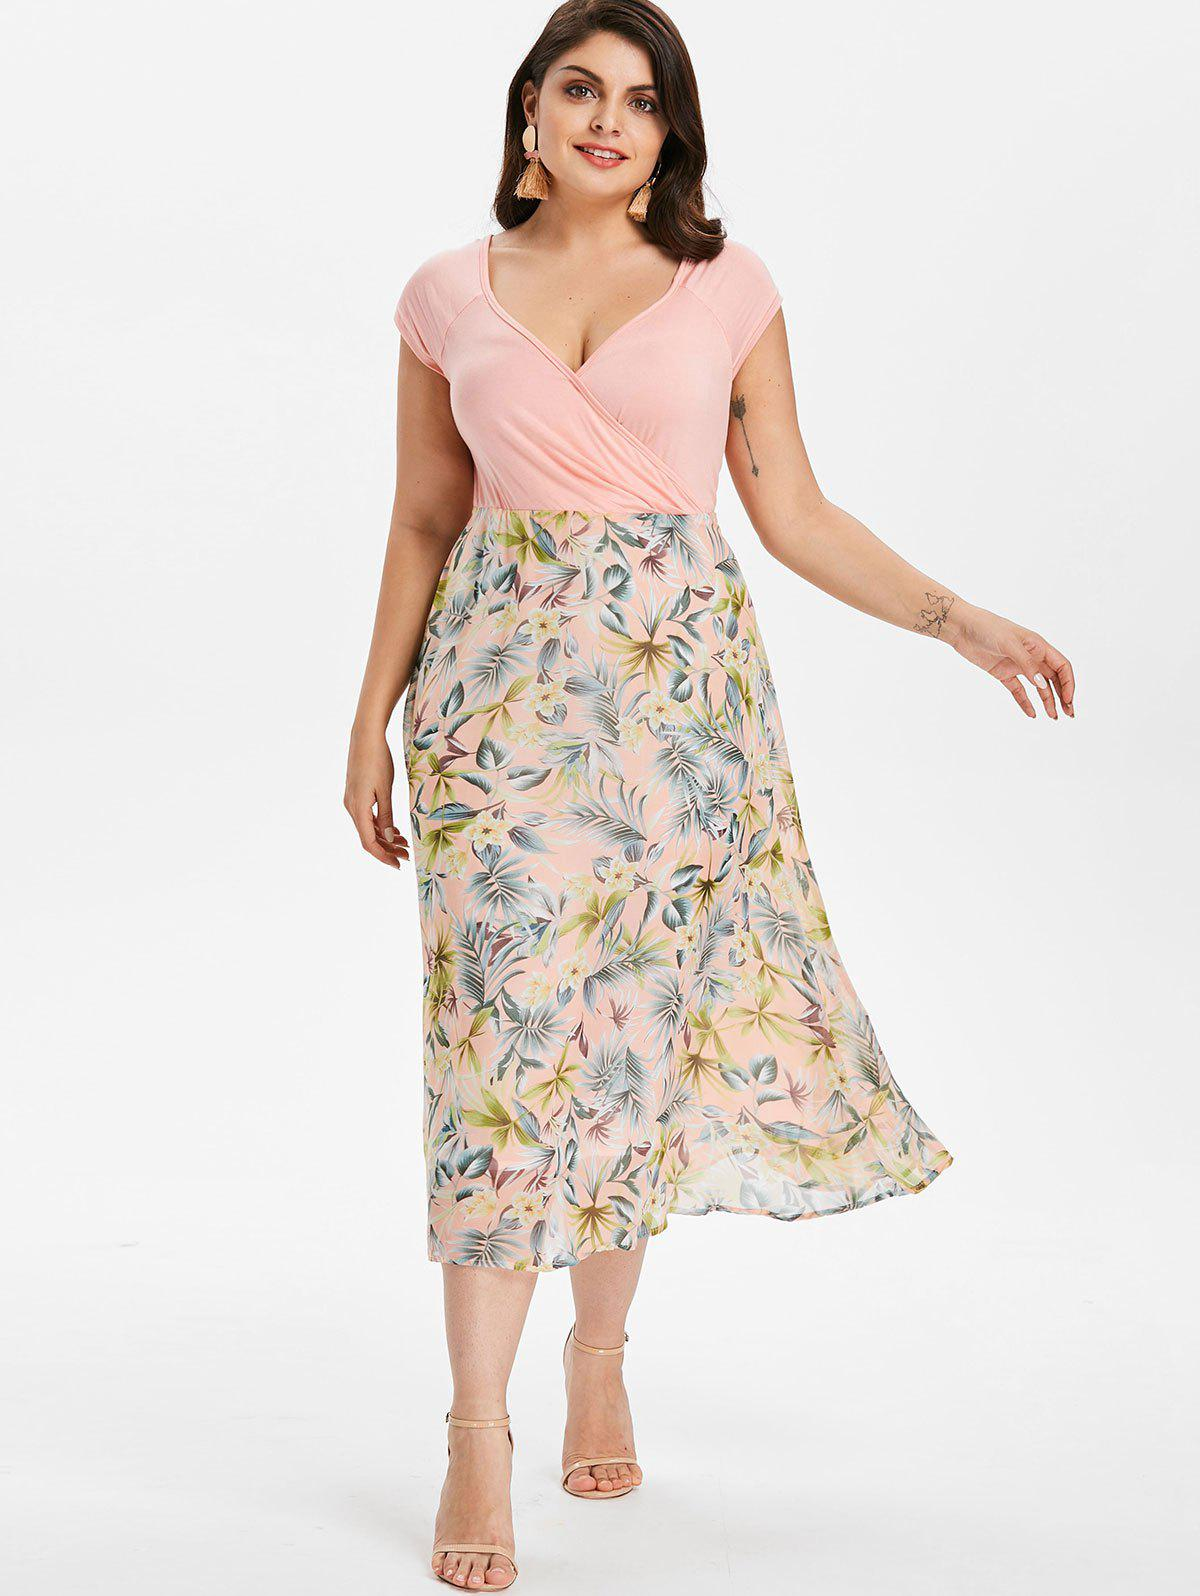 Plus Size Flower Print Hawaiian Dress